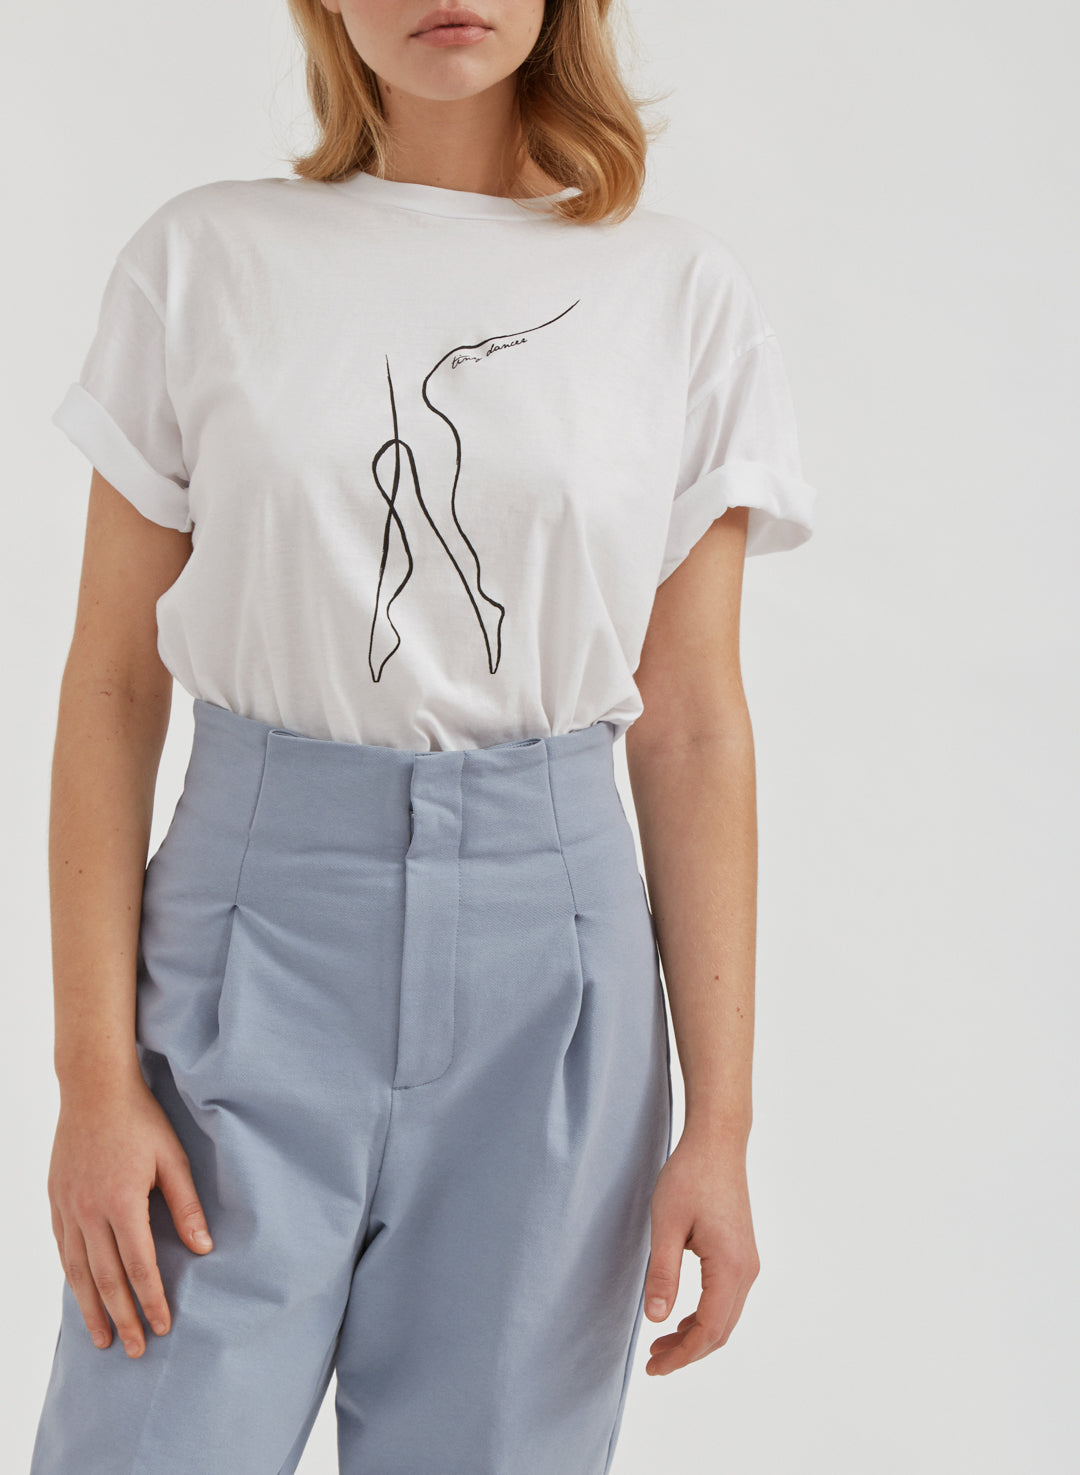 Dancer Boyfriend Tee